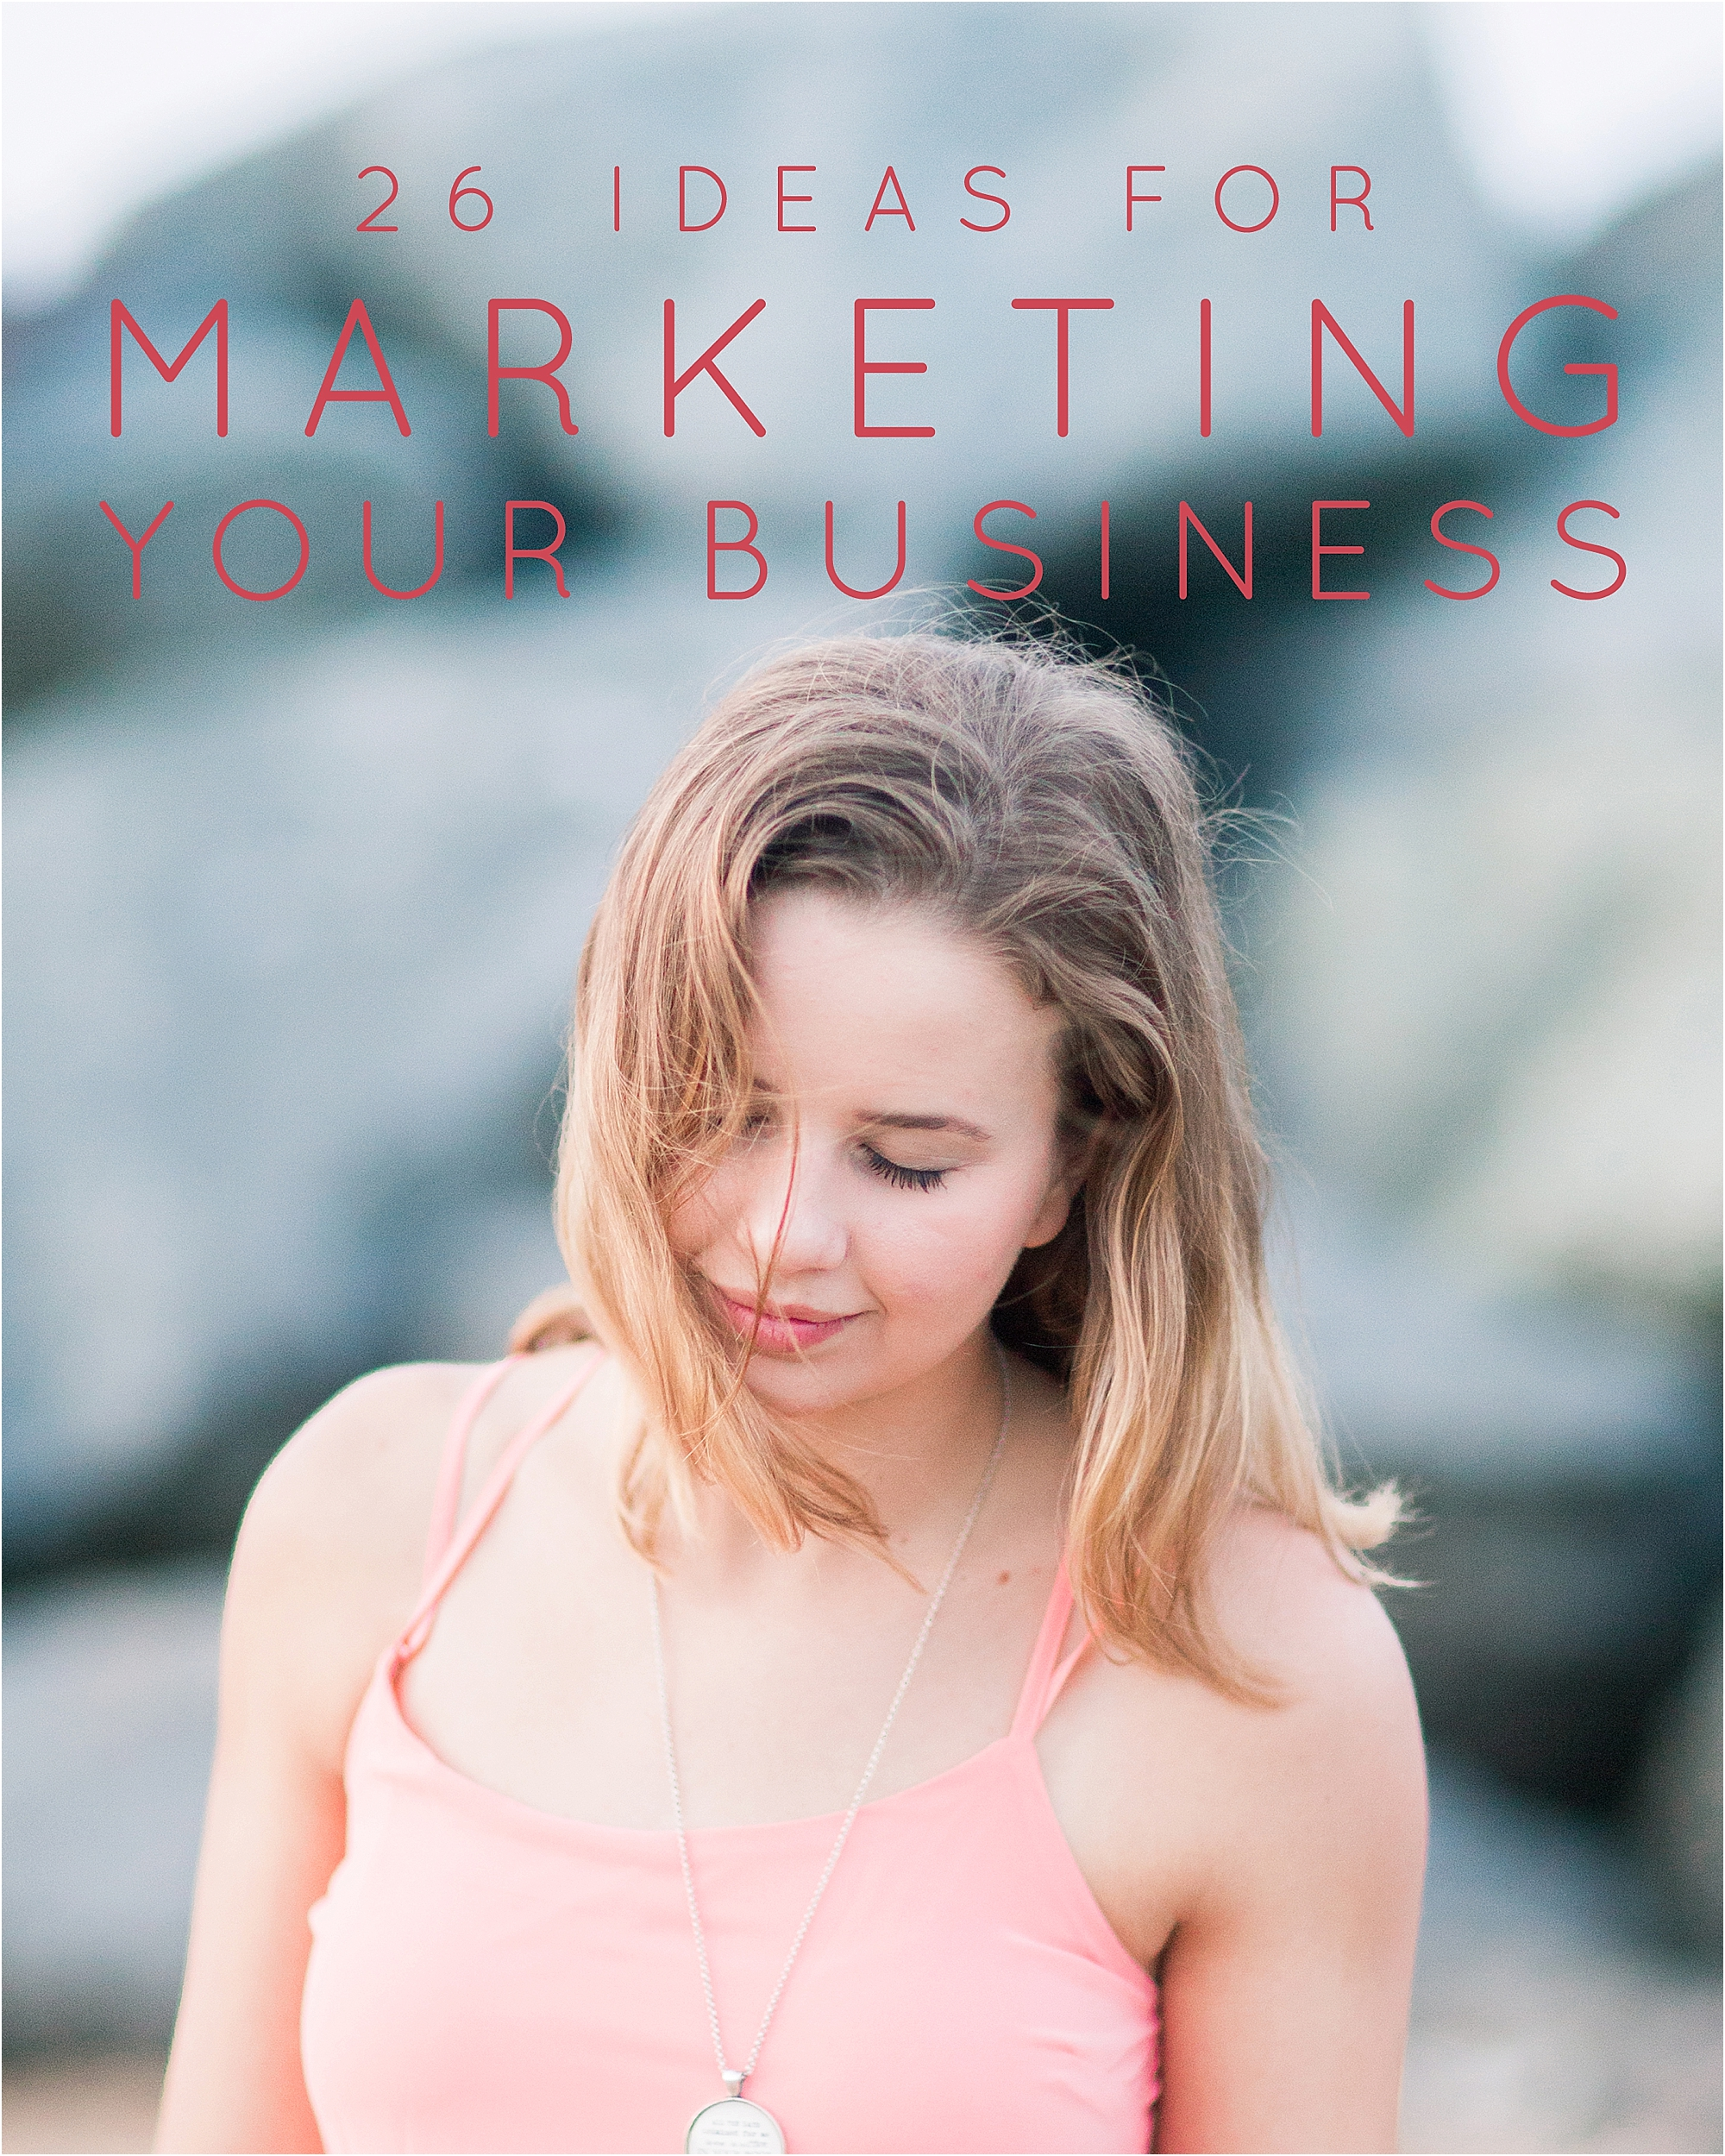 26 Ideas for Marketing Your Business - The Jordan Brittley Blog